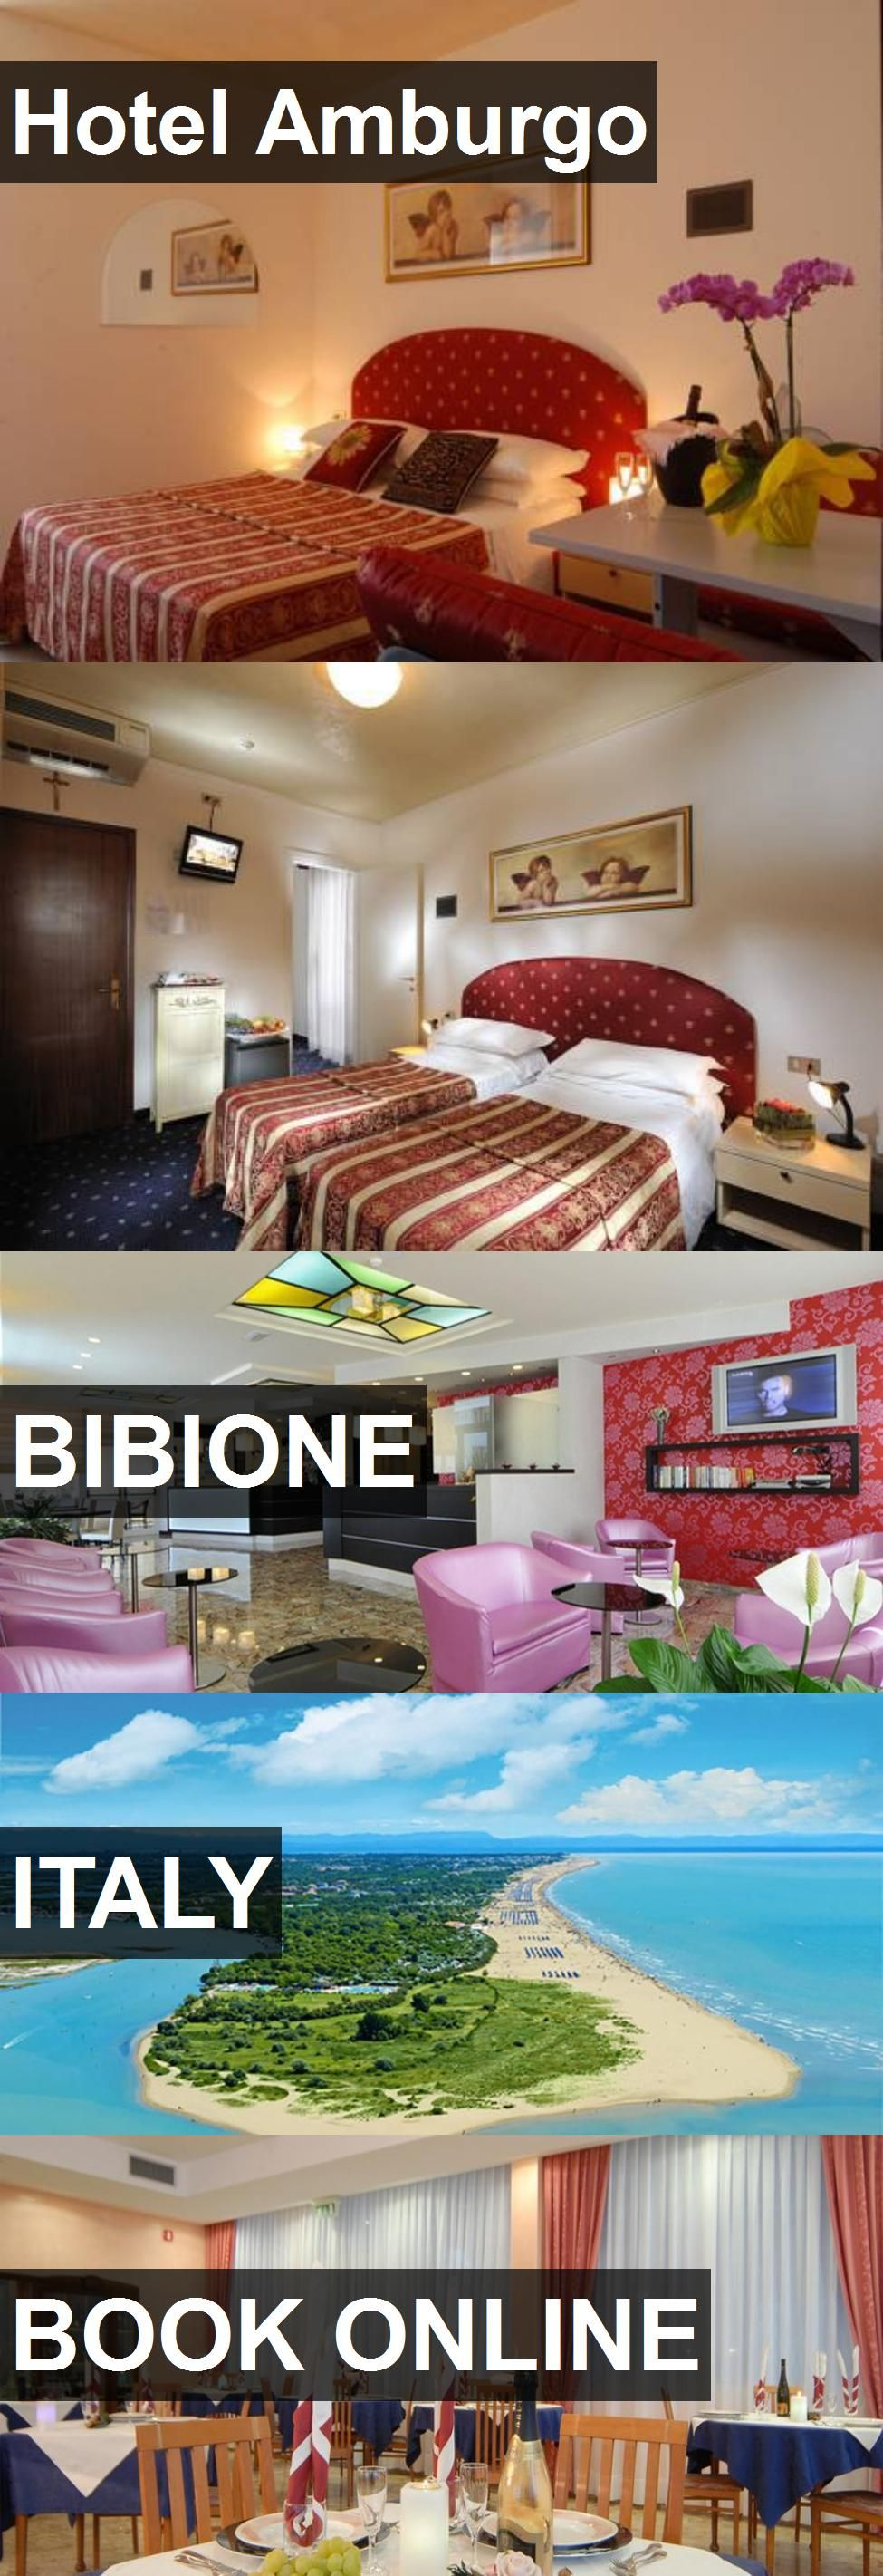 Hotel Amburgo in Bibione, Italy. For more information